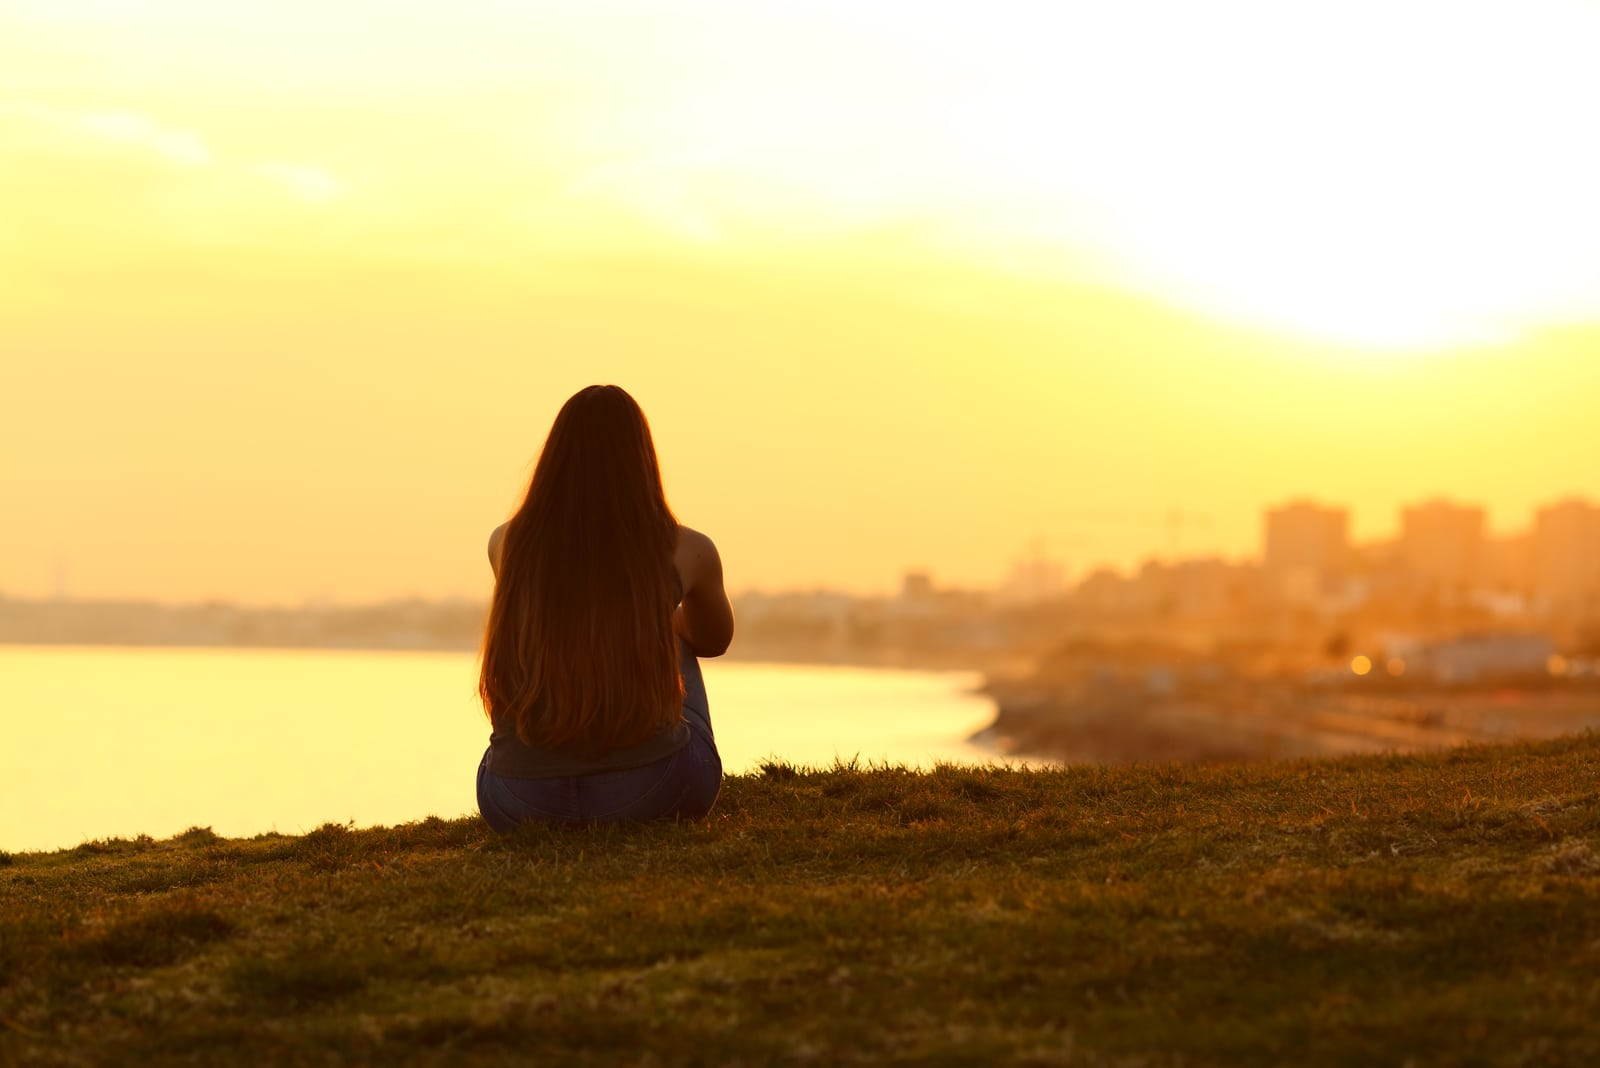 woman watching a sunset on the city